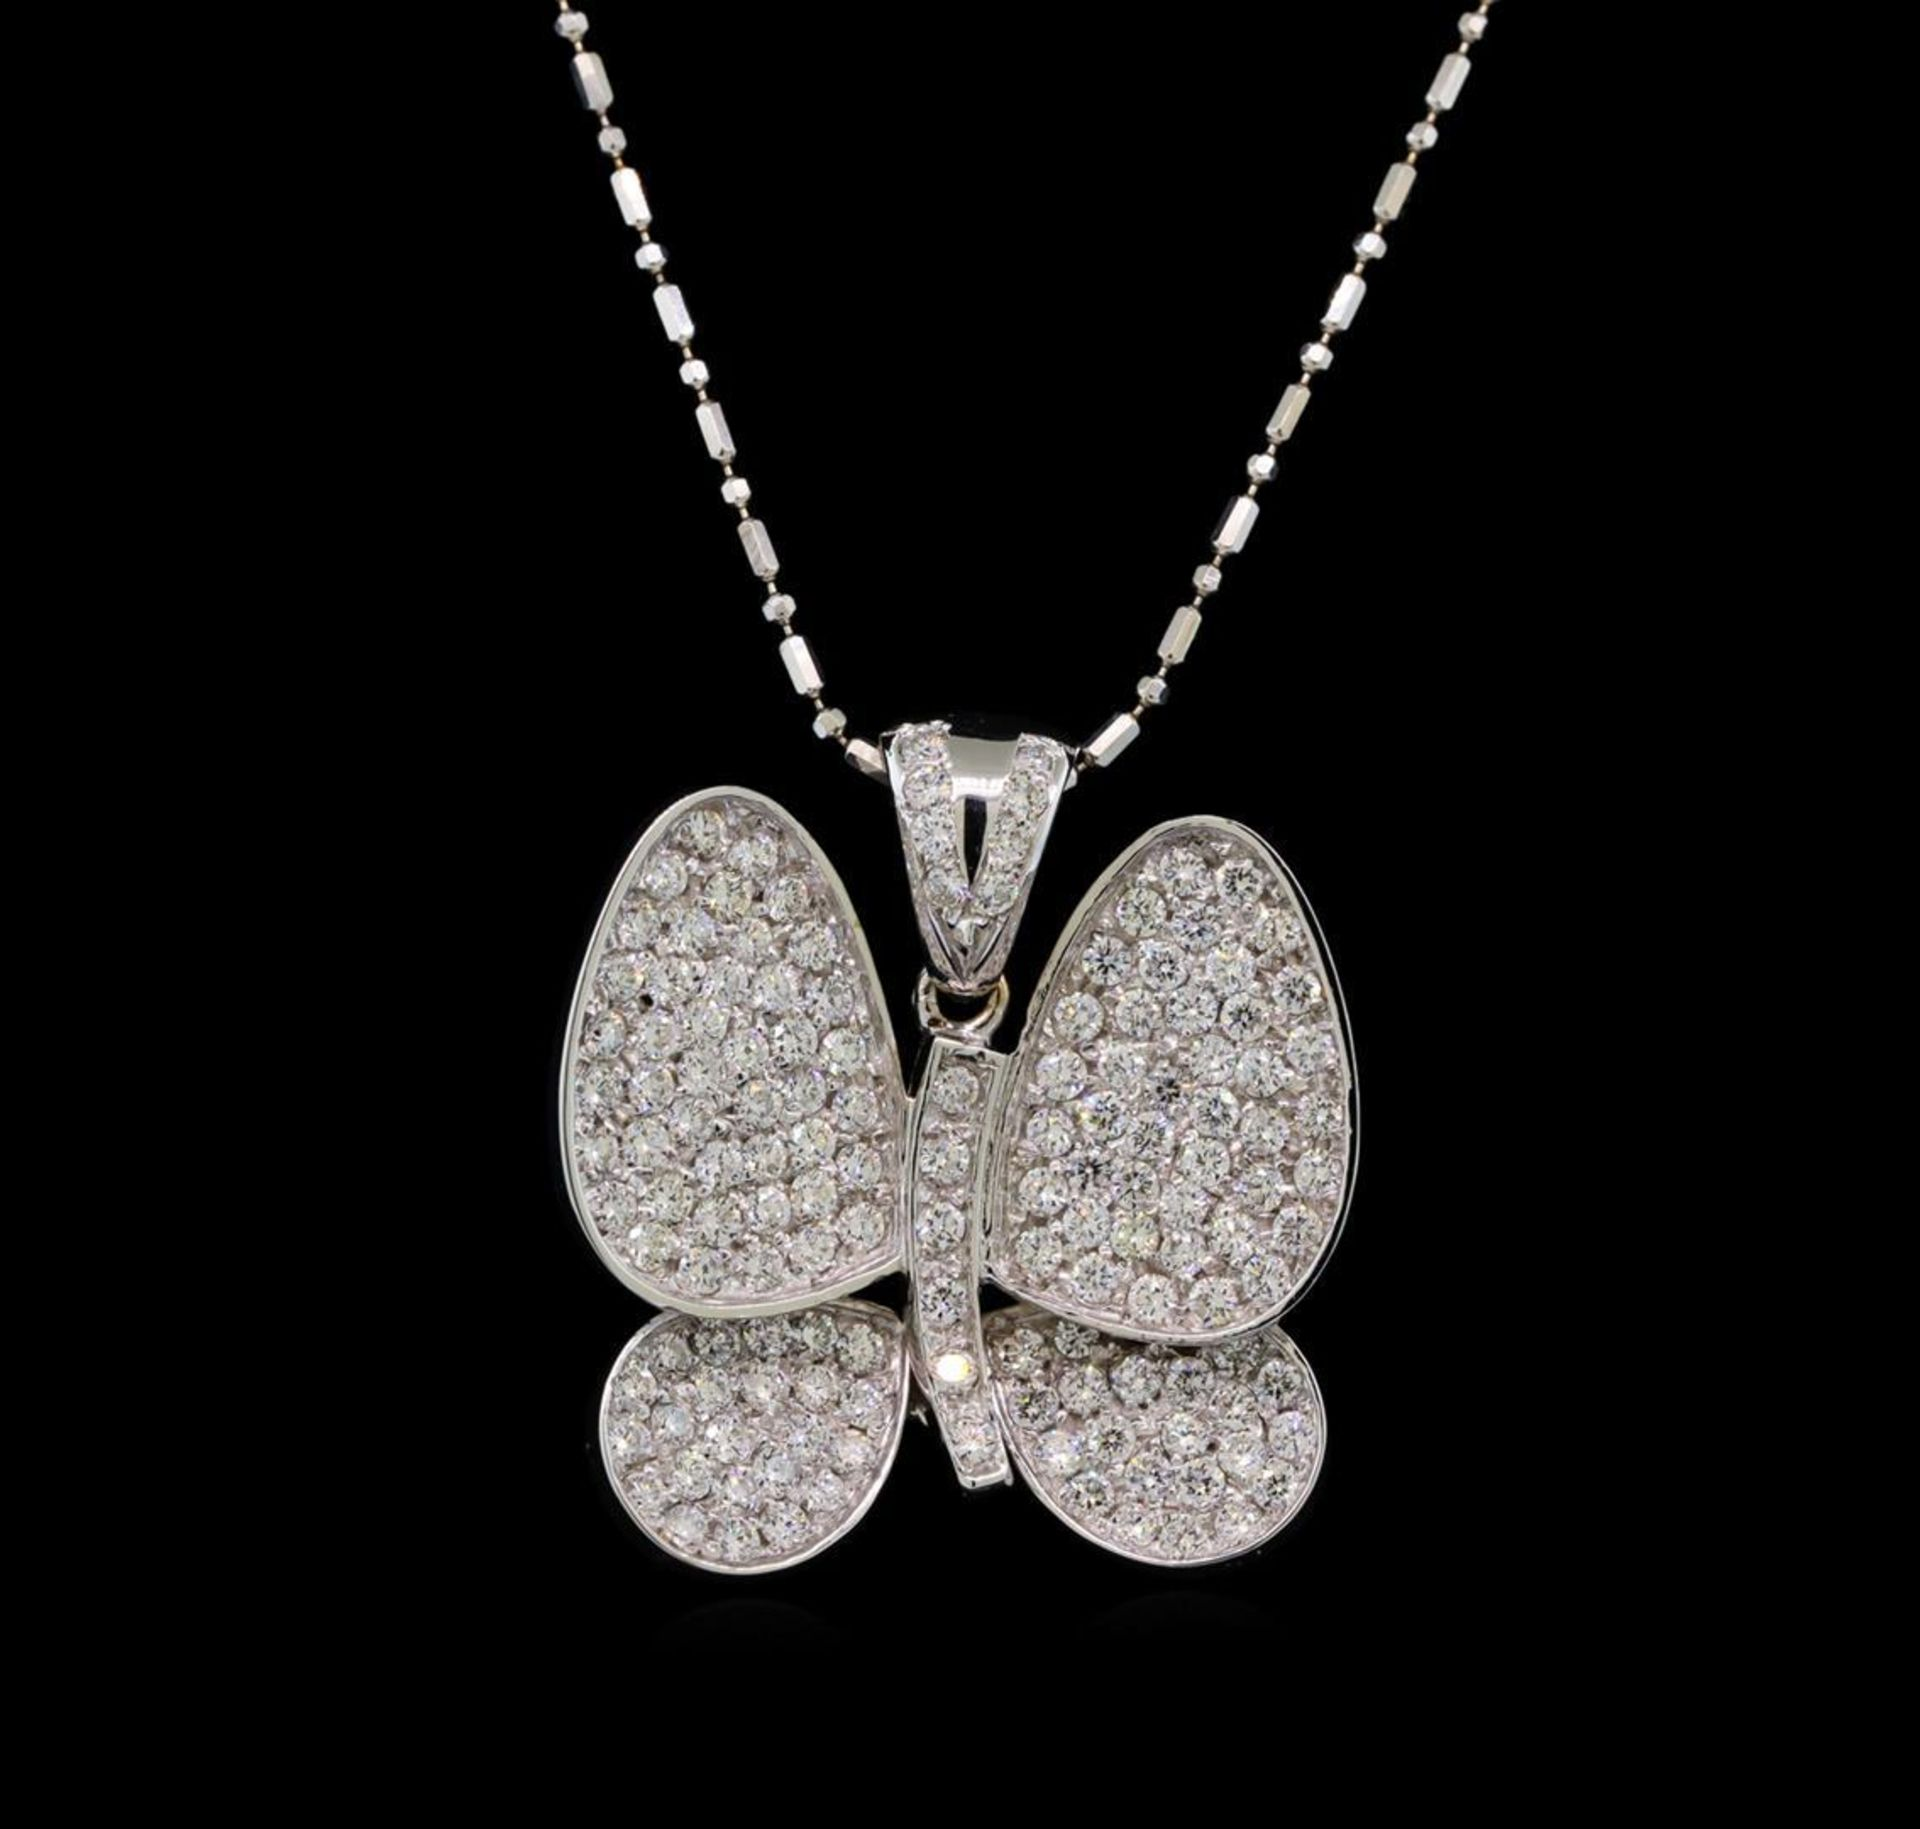 14KT White Gold 2.35 ctw Diamond Pendant With Chain - Image 2 of 3